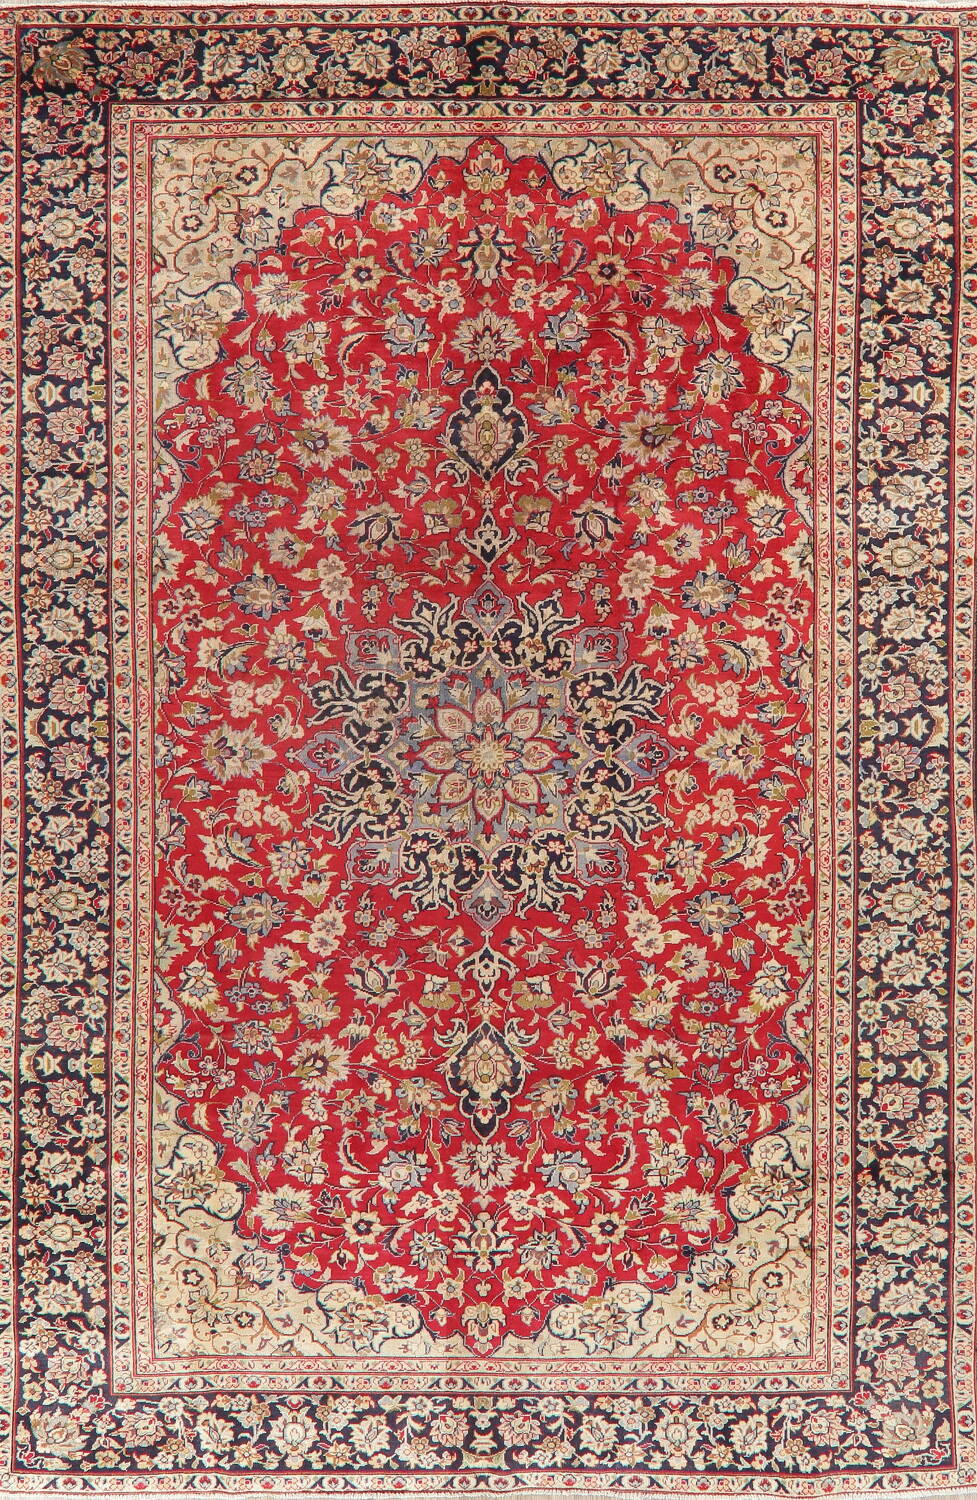 Vintage Floral Red Najafabad Persian Area Rug 8x12 image 1